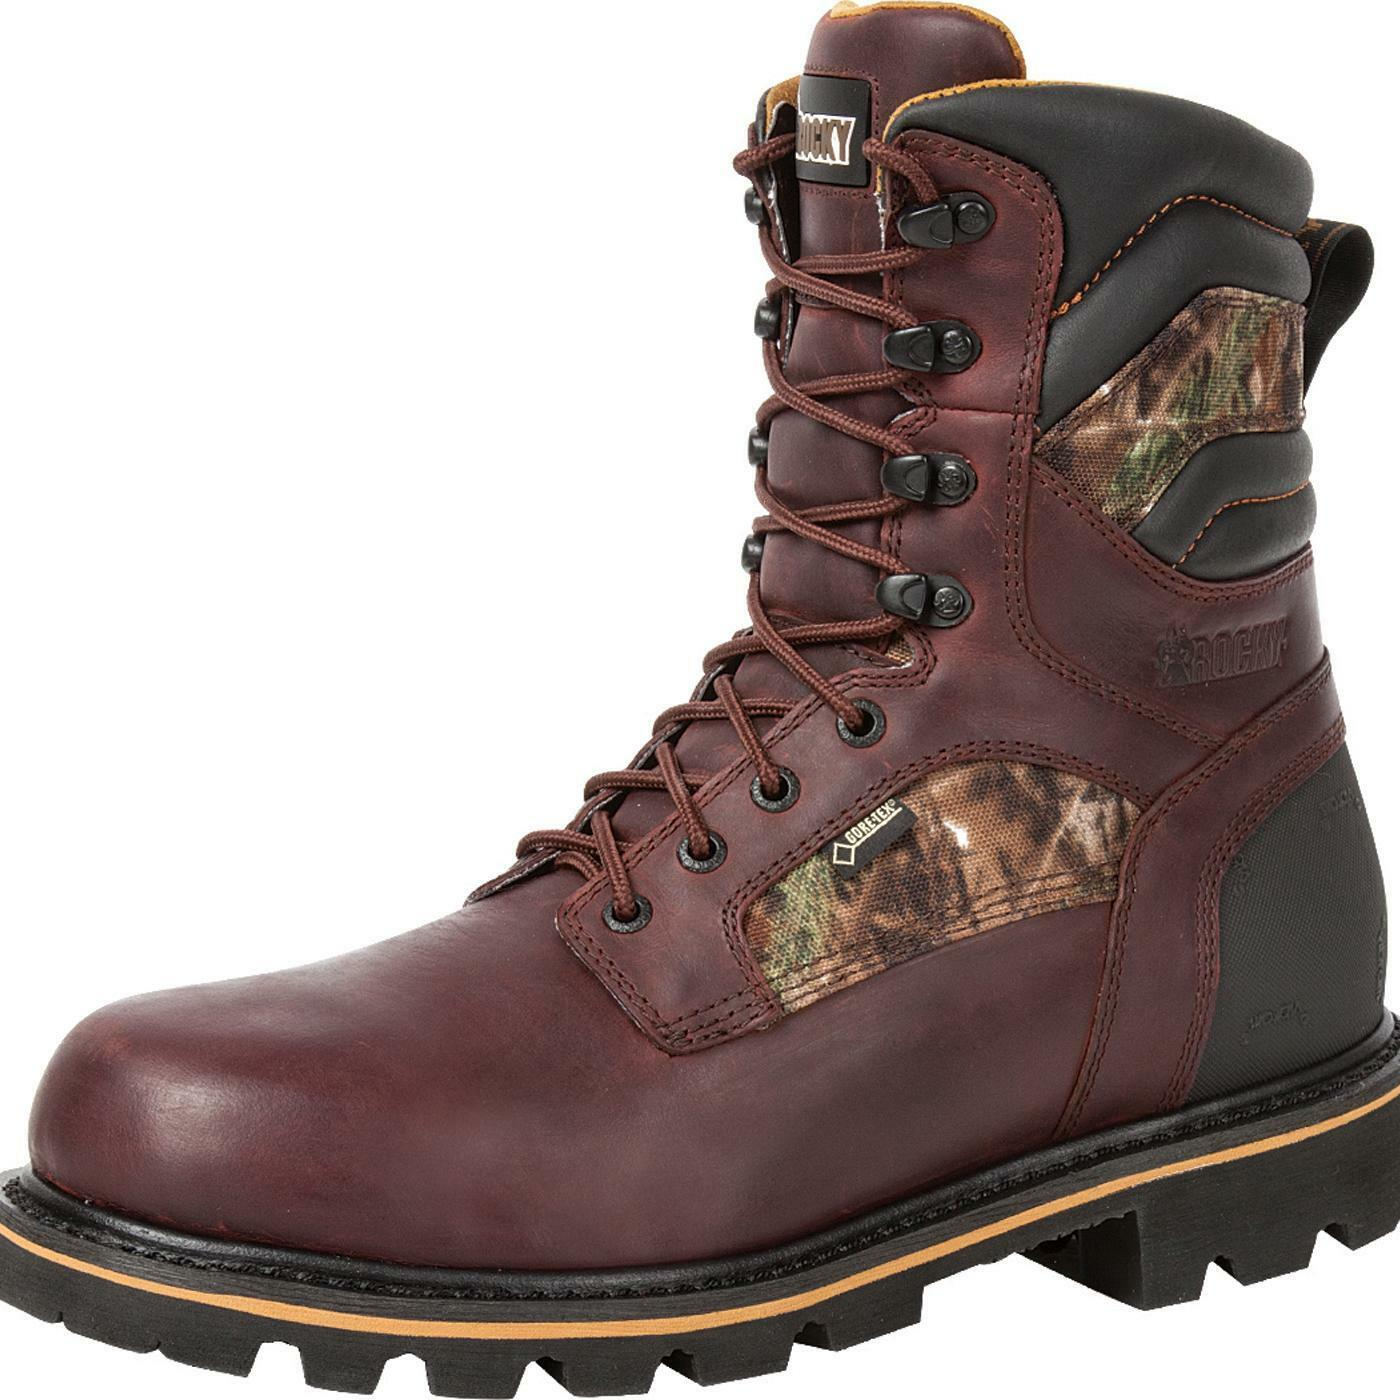 Rocky Governor Mens Insulated Boots 800 Gram Size 9.5W  RKYO001 NEW!!!